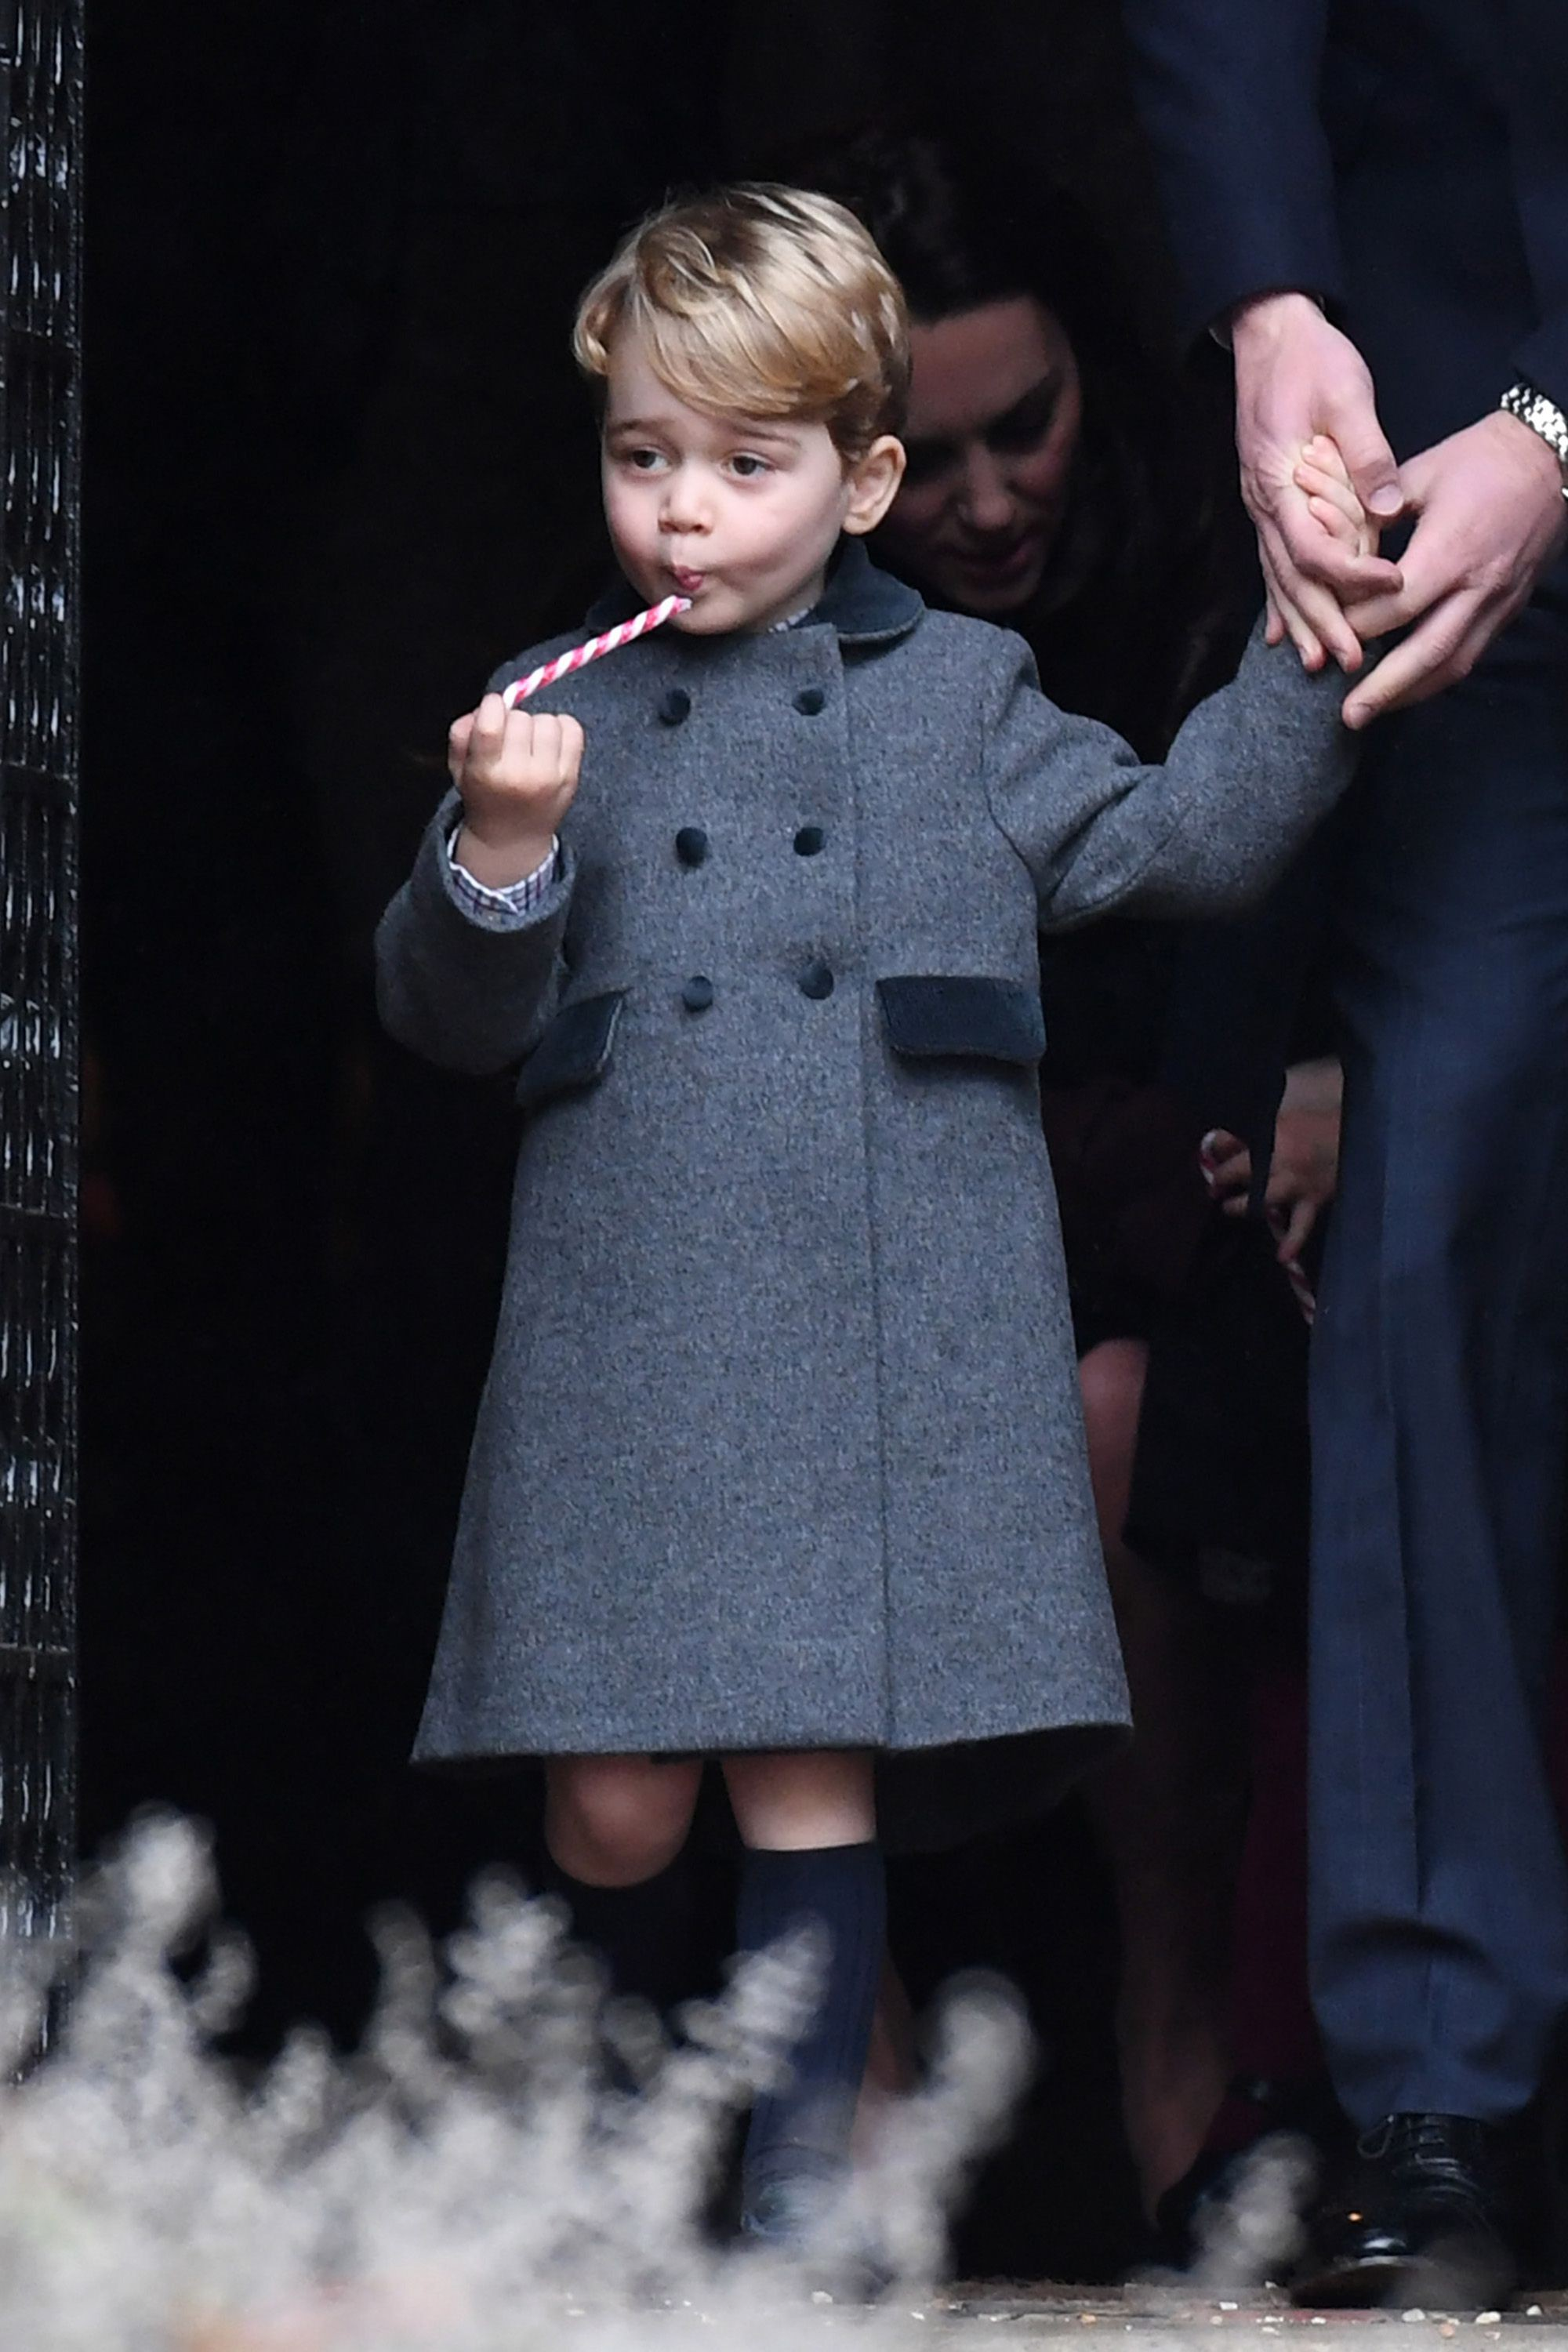 hbz-prince-george-princess-charlotte-cute-moments-gettyimages-630521470-1504817632